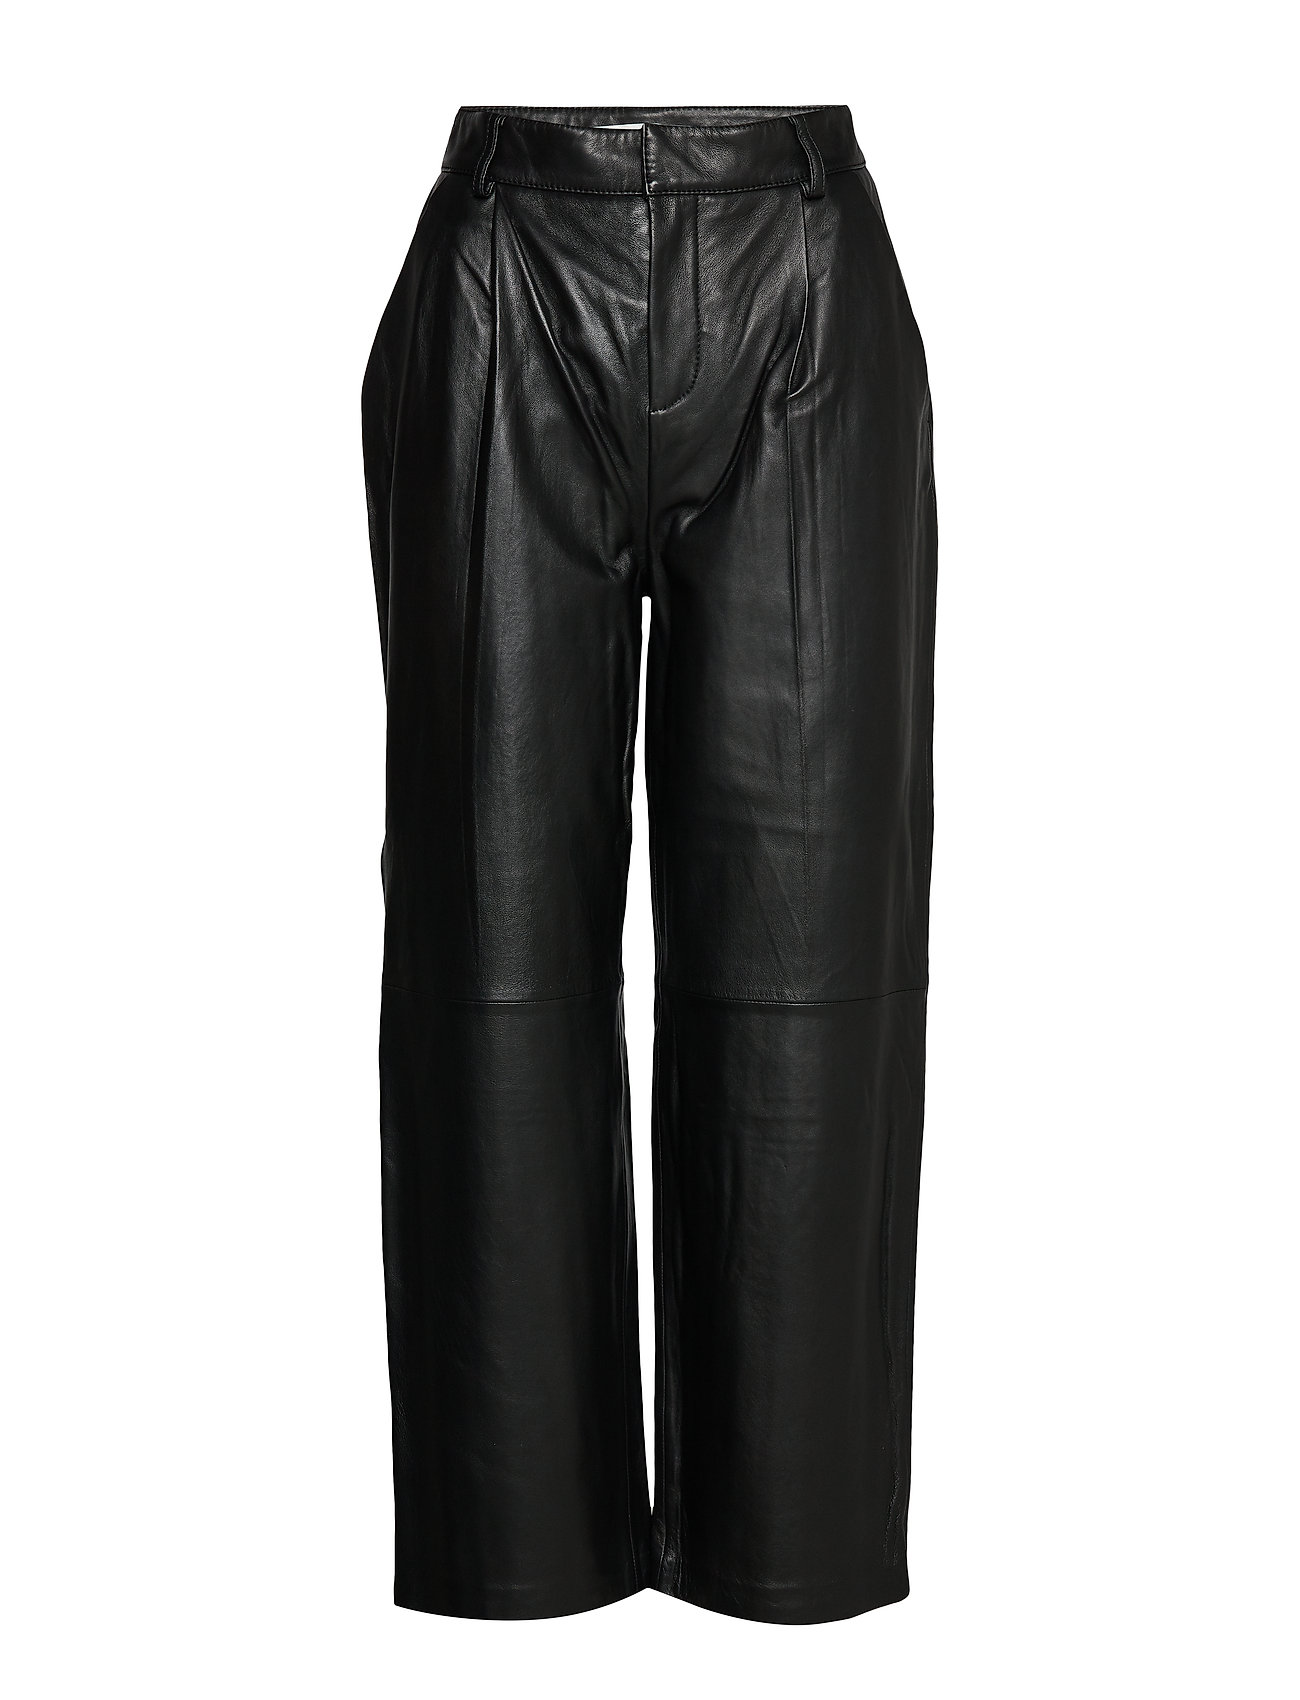 Image of Aliahgz Culotte Leather Leggings/Bukser Sort Gestuz (3321794627)